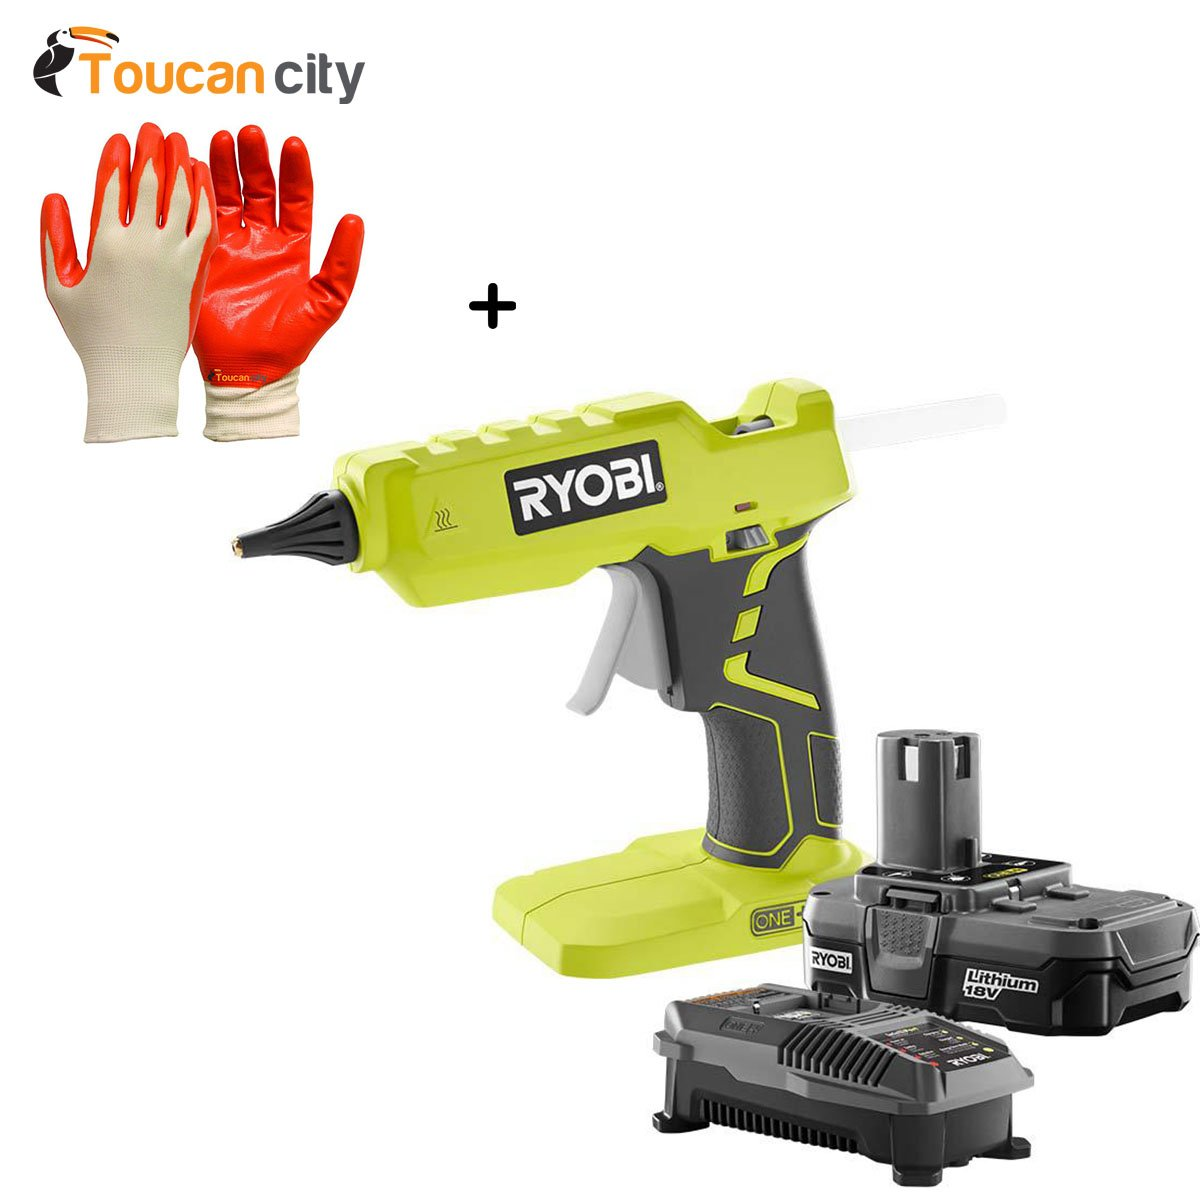 Ryobi 18-Volt ONE+ Lithium-Ion Full Size Glue Gun Kit with One 1.3Ah Battery and Charger P1906N and Toucan City Nitrile Dip Gloves(5-Pack)